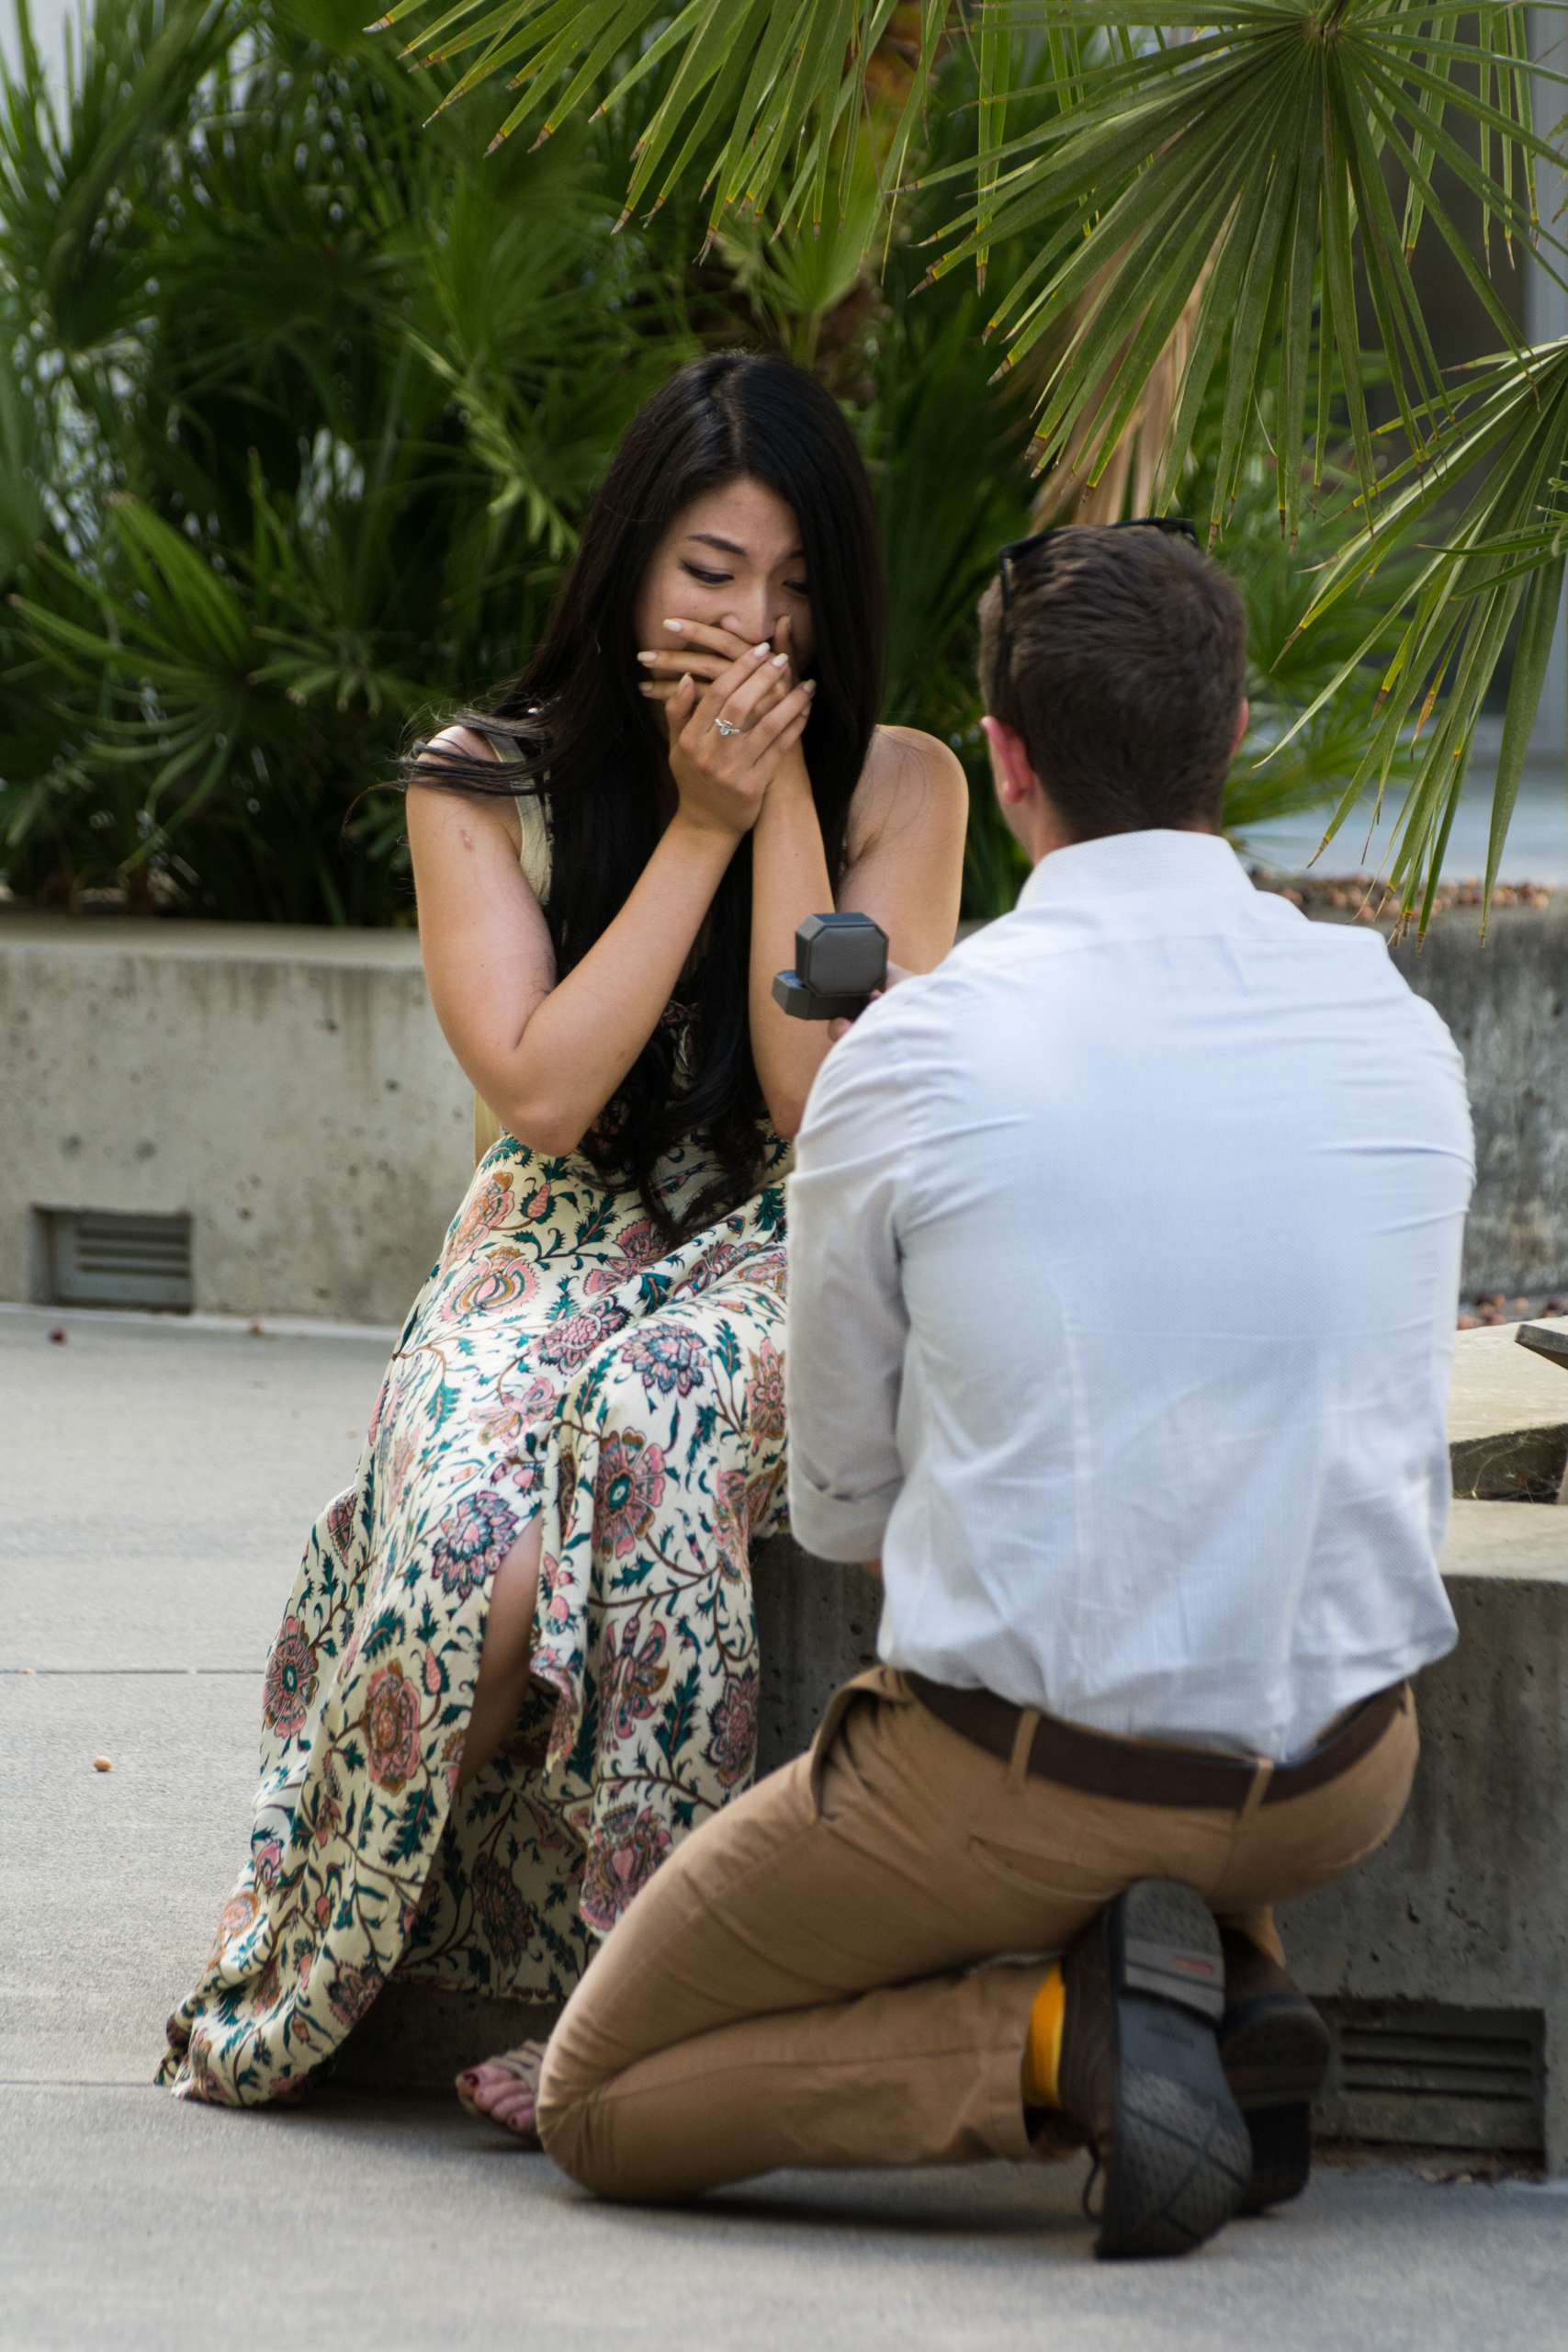 Dave-Amery_Proposal_E-Session-3932.jpg